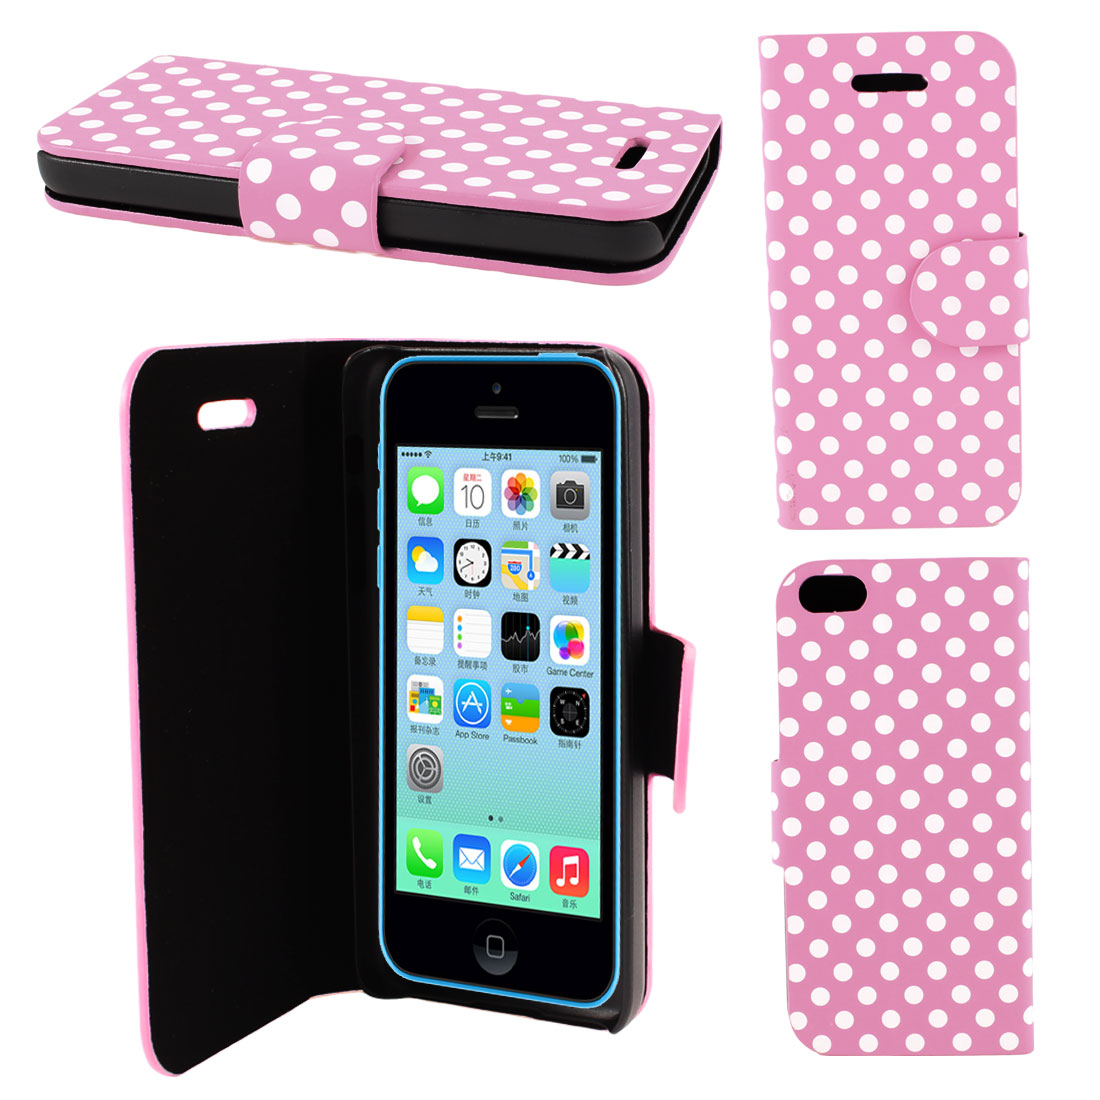 Pink Faux Leather Round Pattern Magnetic Flip Stand Pouch Case for iPhone 5C